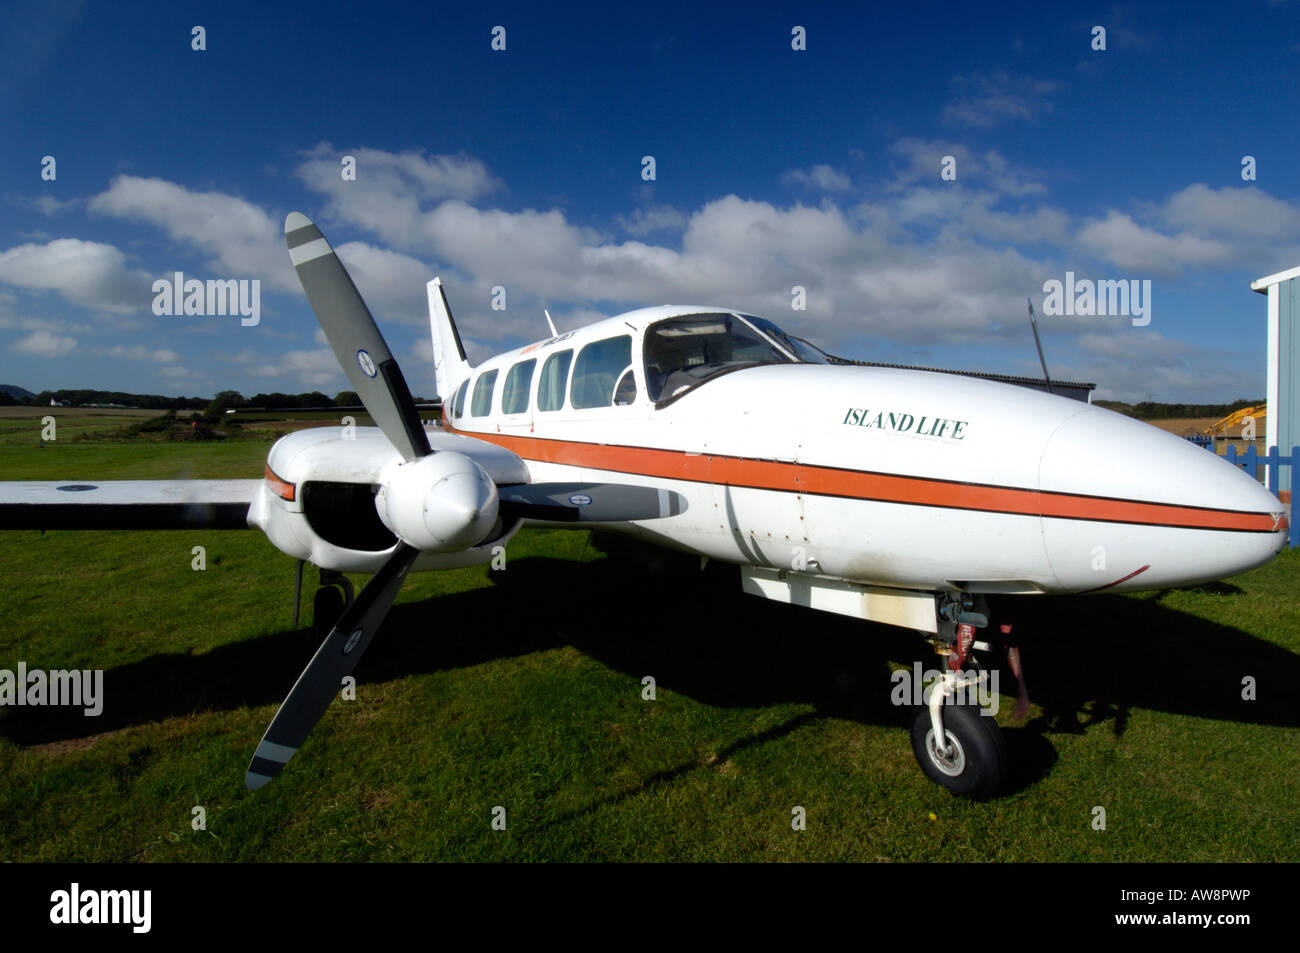 a light aircraft private plane jet propeller turbo prop aeroplane at an airfield airport aerodrome at sandown  the - Stock Image